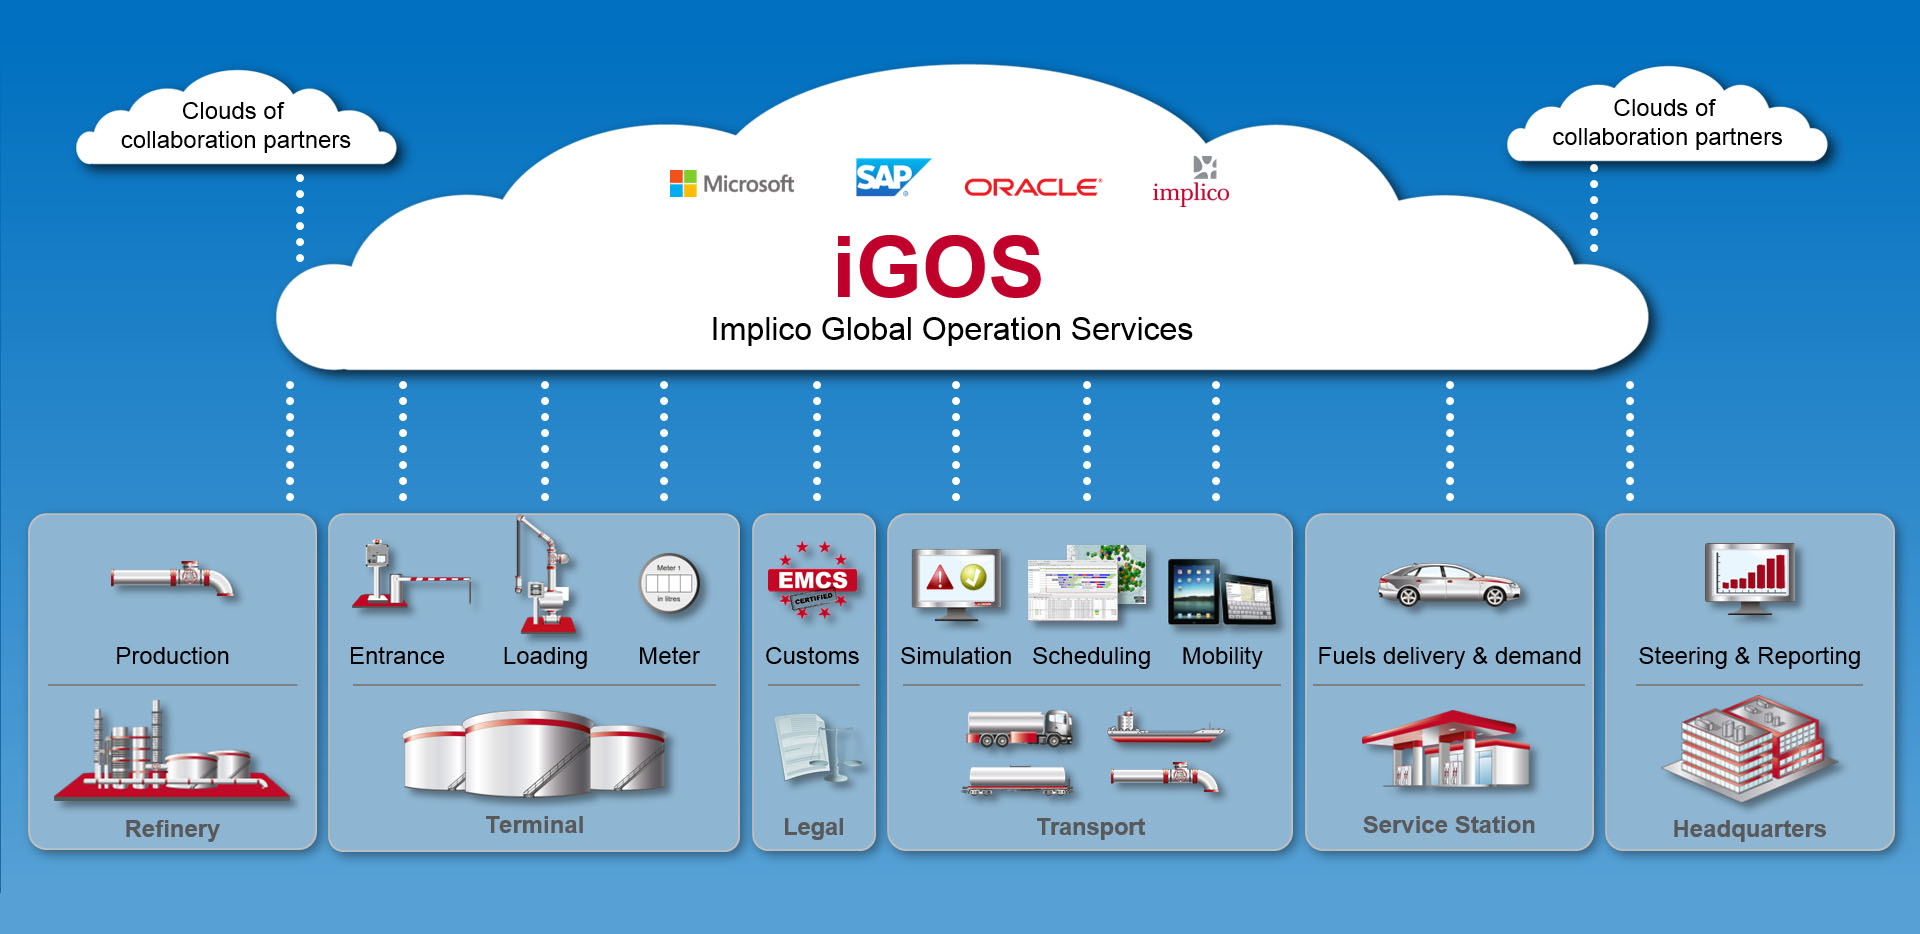 Implico-Global-Operation-Services-Graphic.jpg